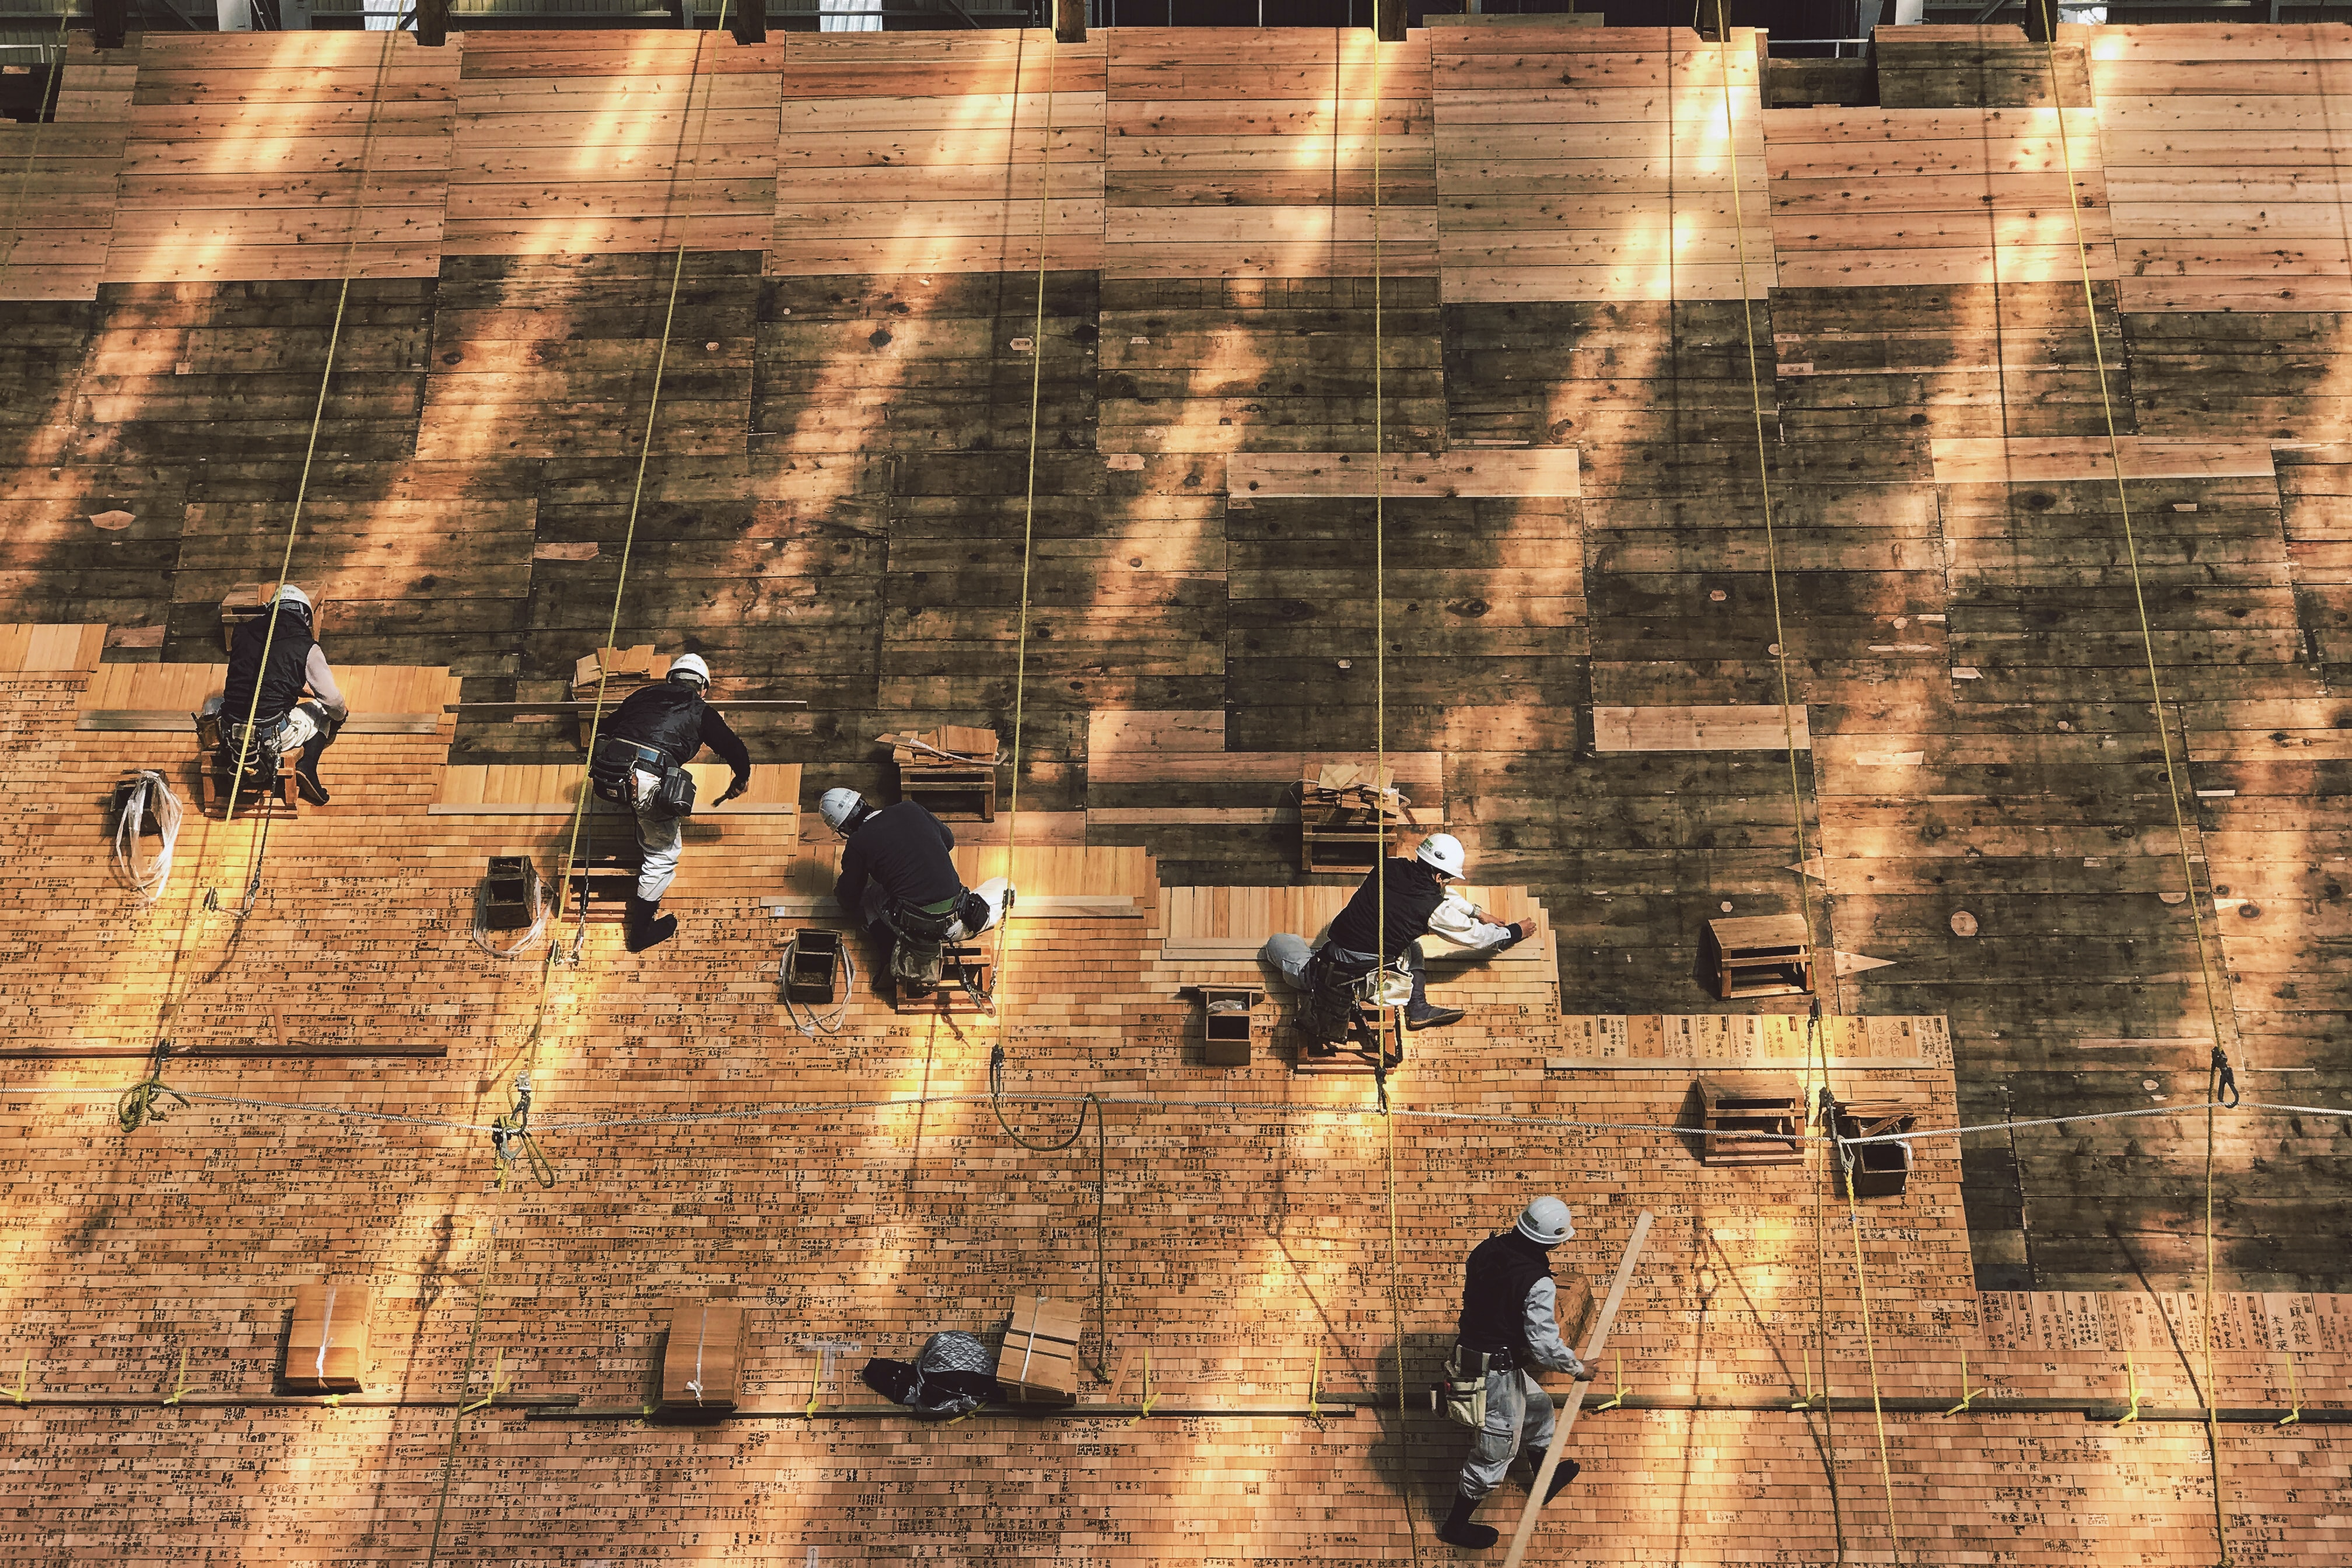 Construction workers laying out tiles on a roof